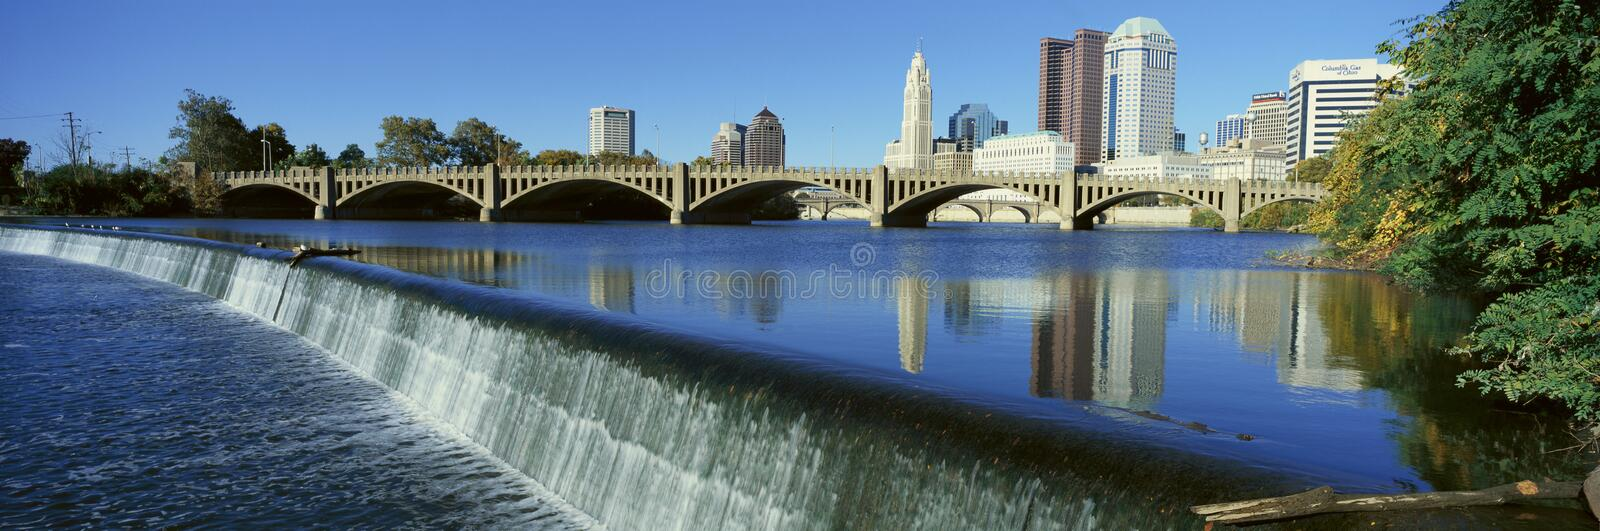 Scioto River with waterfall and Columbus Ohio skyline, with setting sunlight royalty free stock images